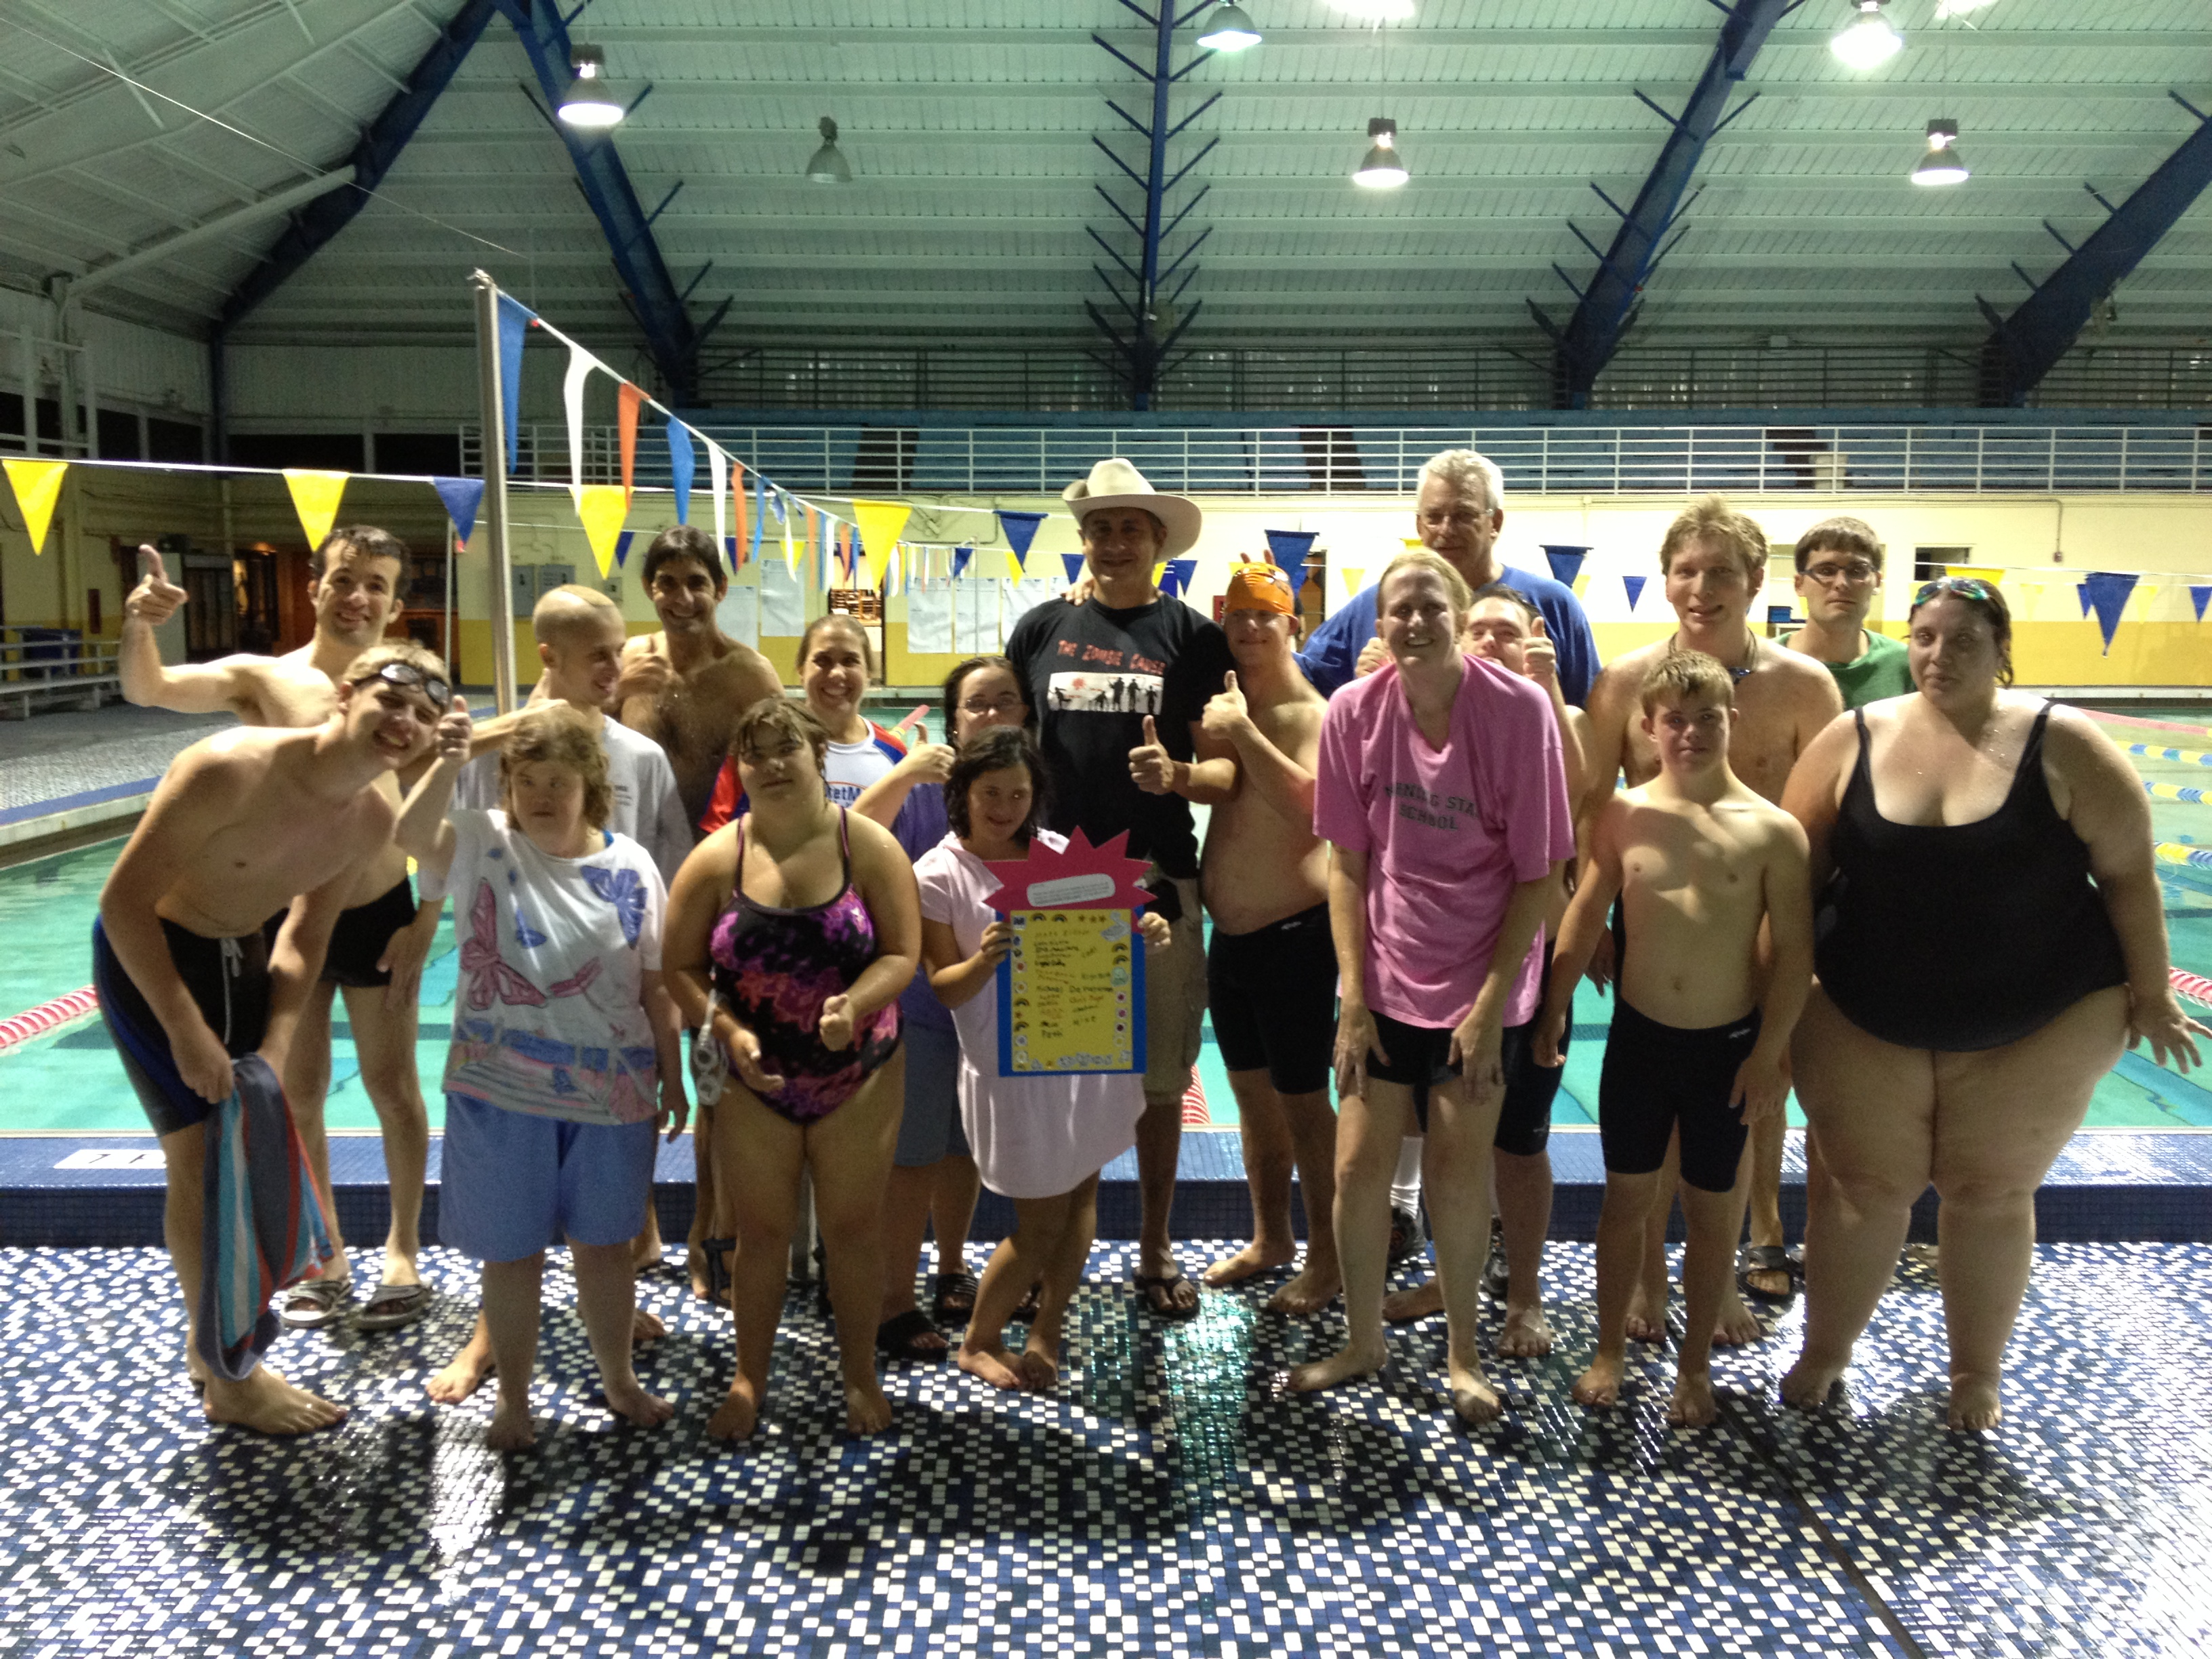 Our swimmers make a thank you card for Mi Hoshino for helping coach Lucky organize the event.